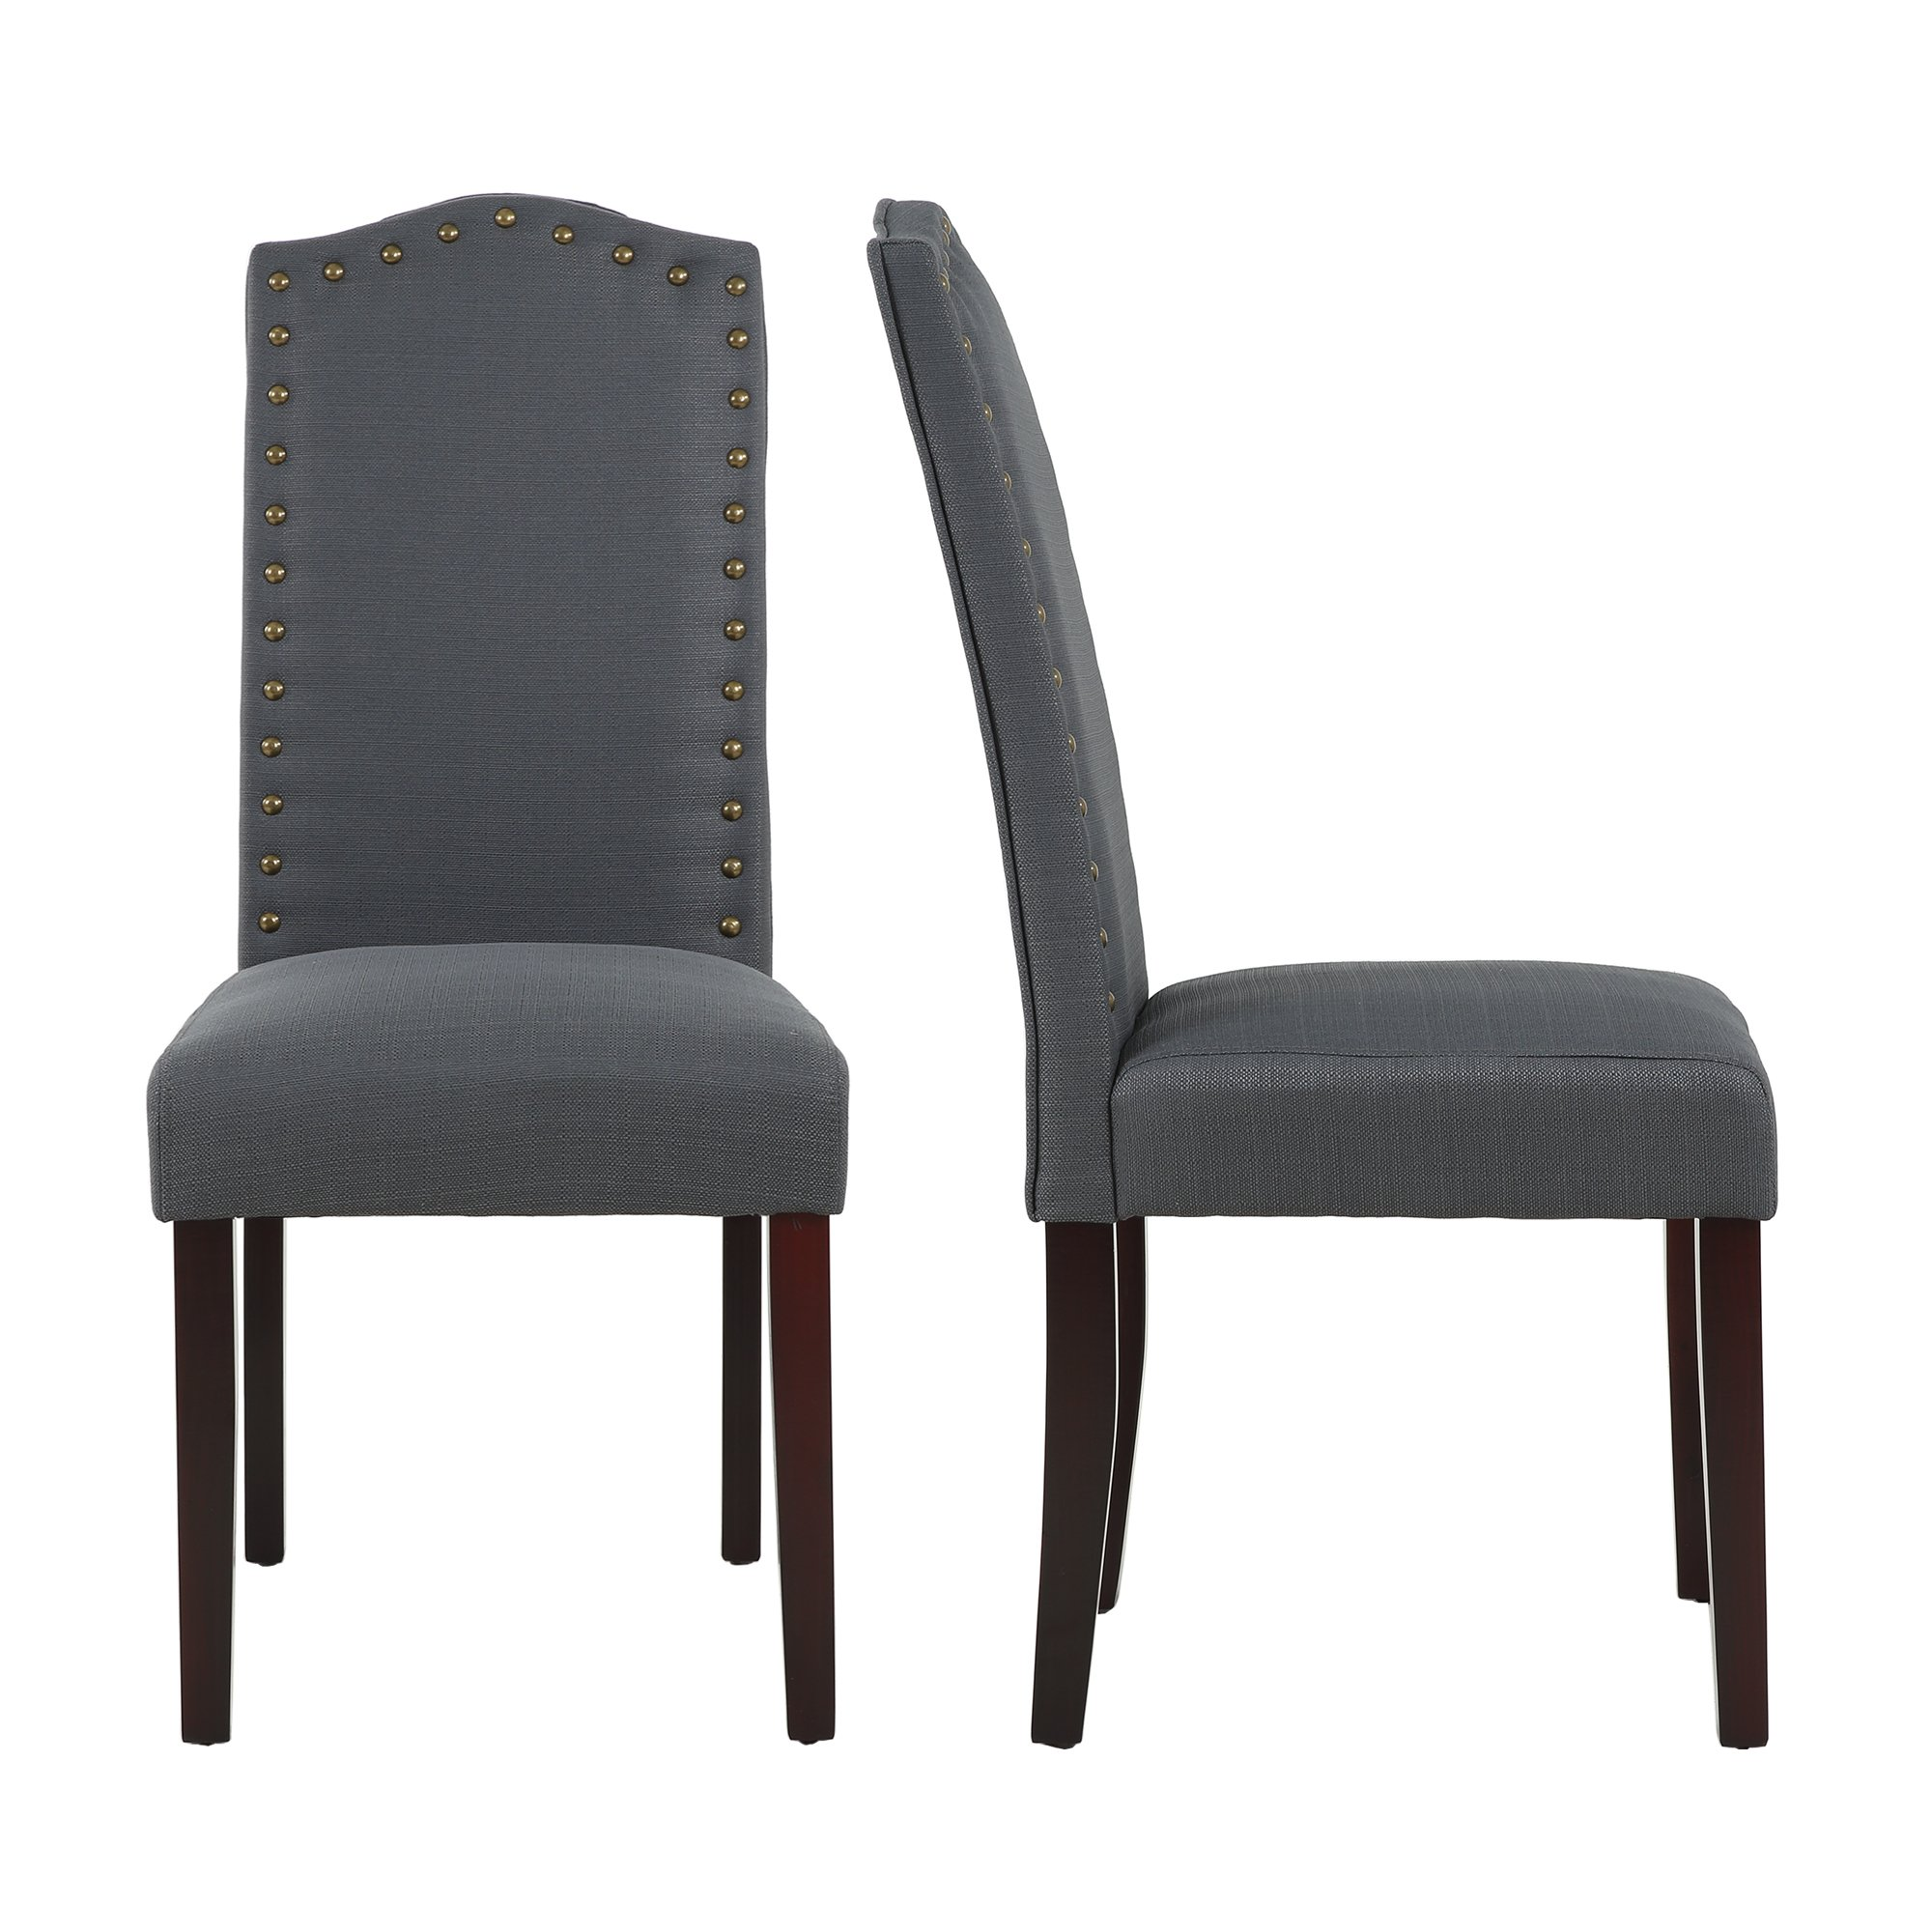 LSSBOUGHT Set of 2 Luxurious Fabric Dining Chairs with Copper Nails and Solid Wood Legs (Dark Gray)